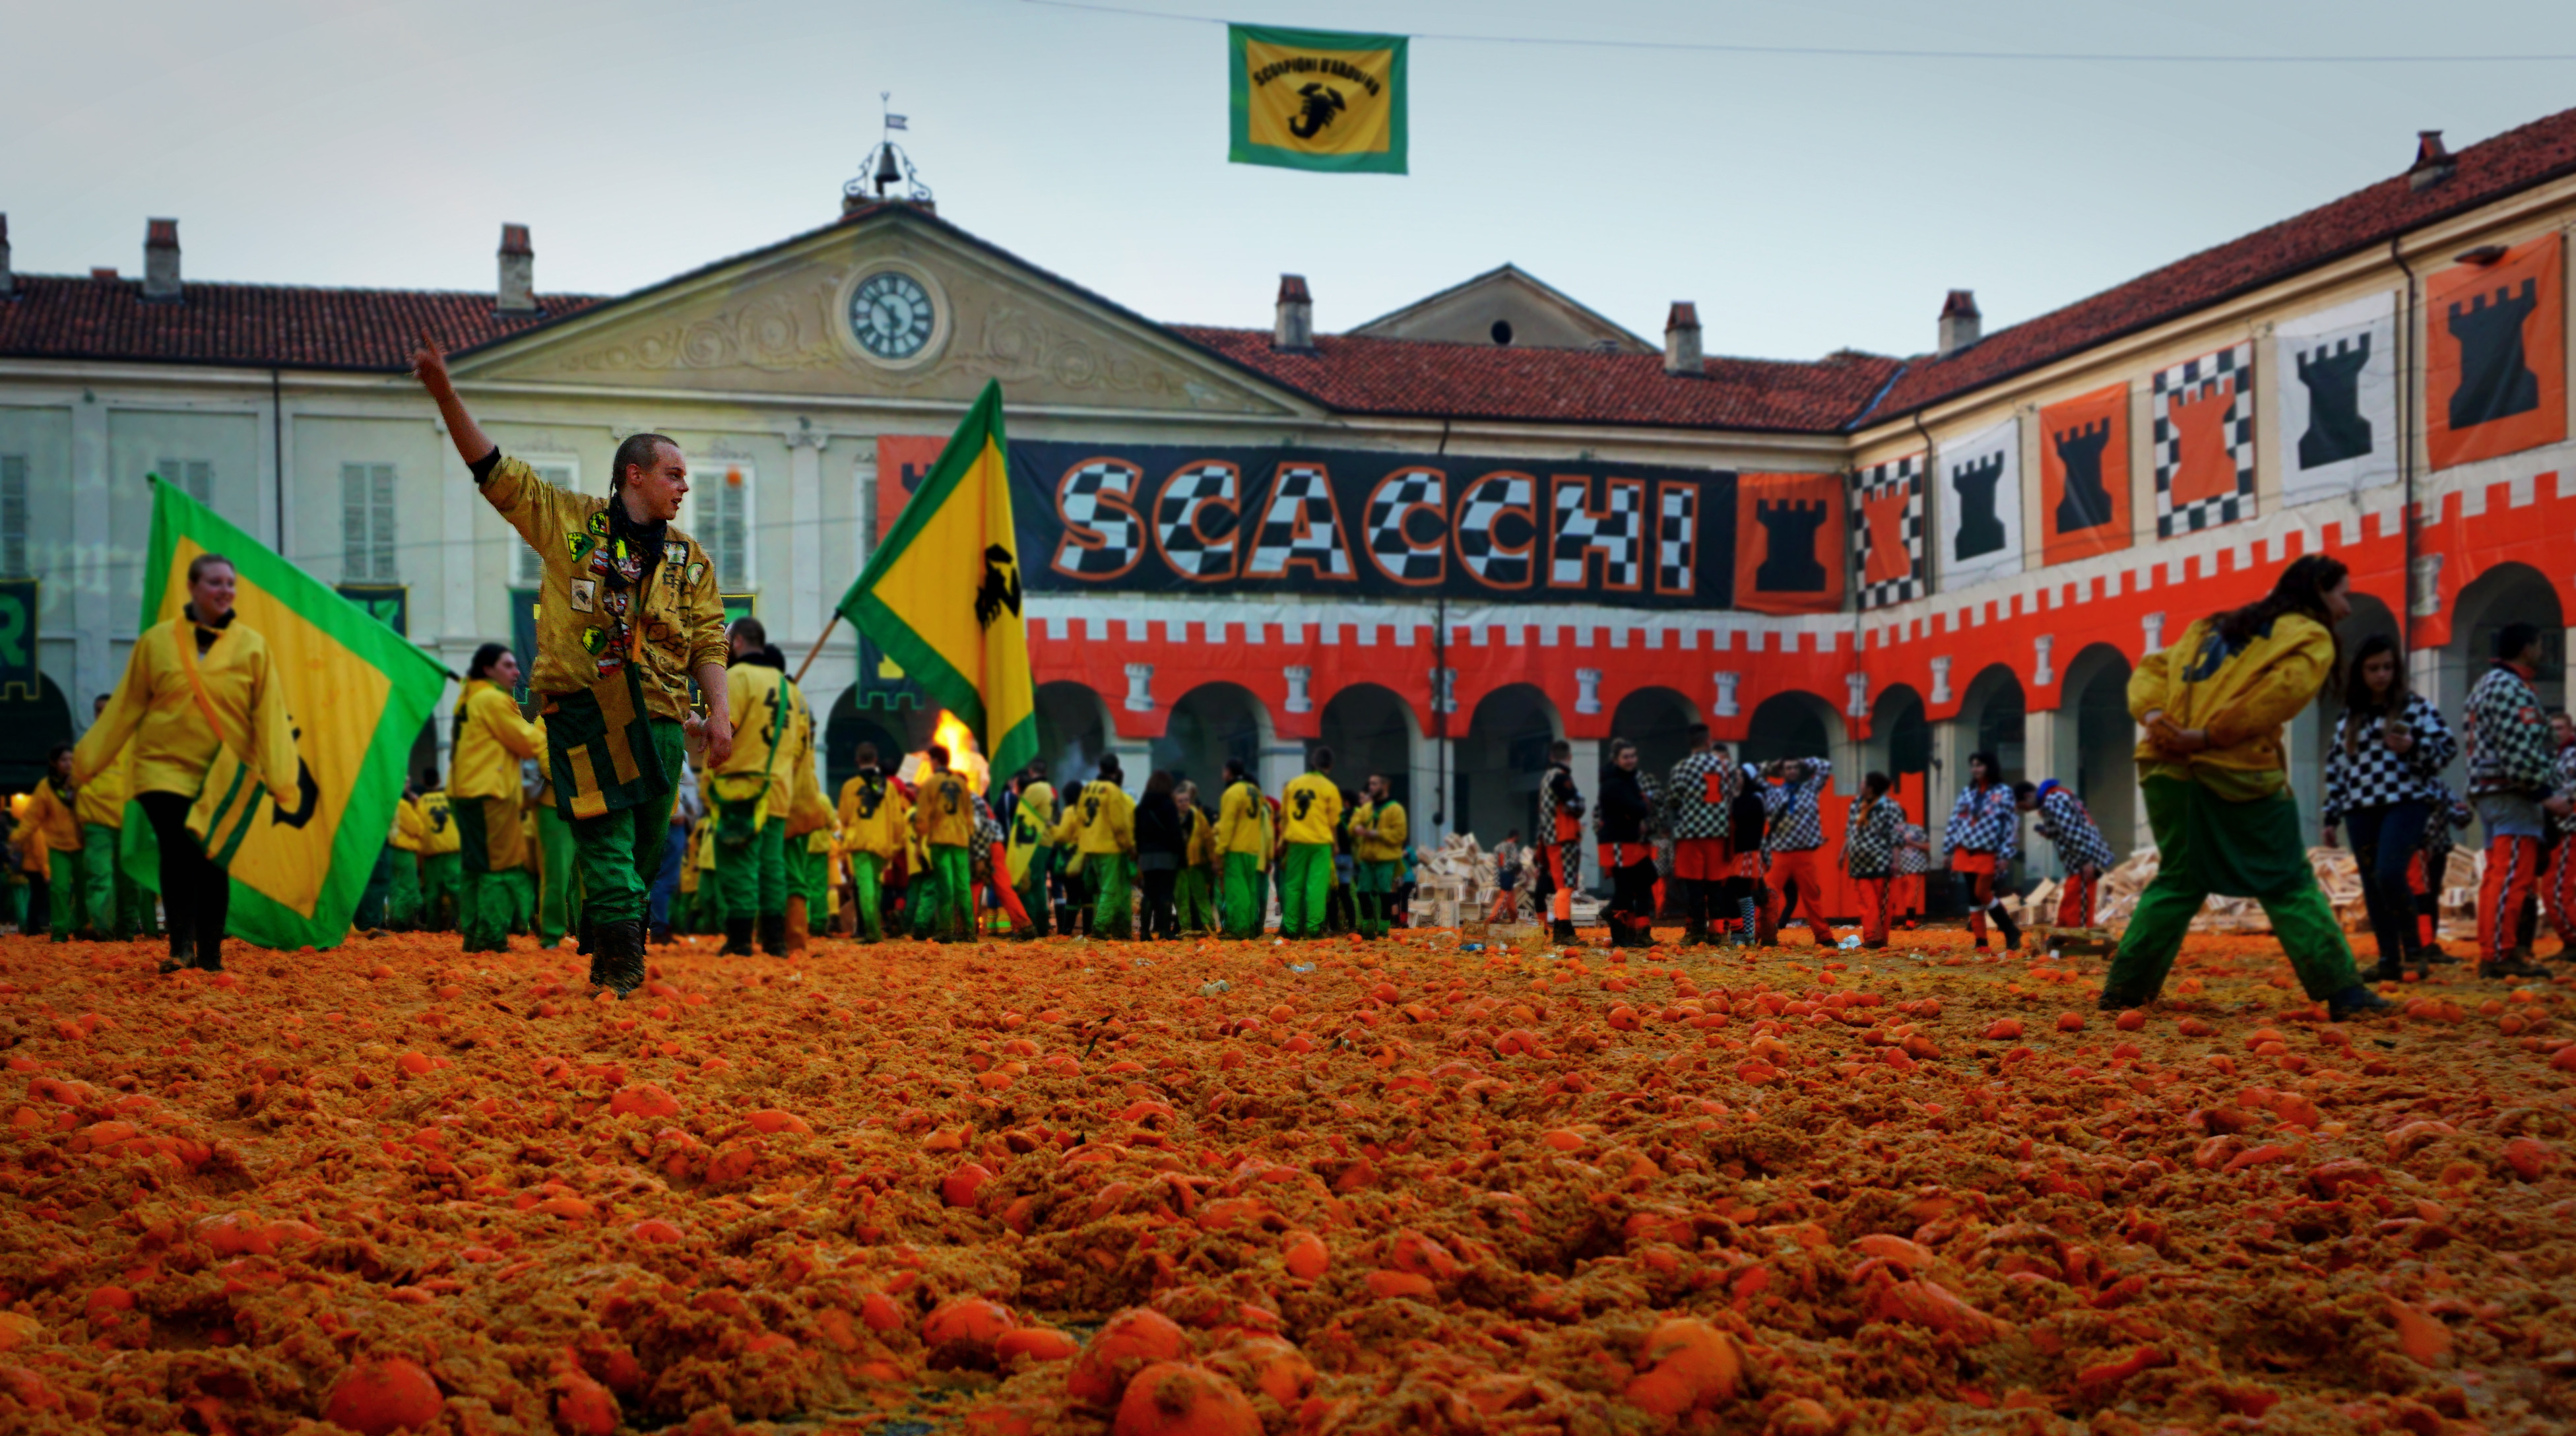 Ben Guerra-LC-Carnival in Ivrea, The Battle of the Oranges